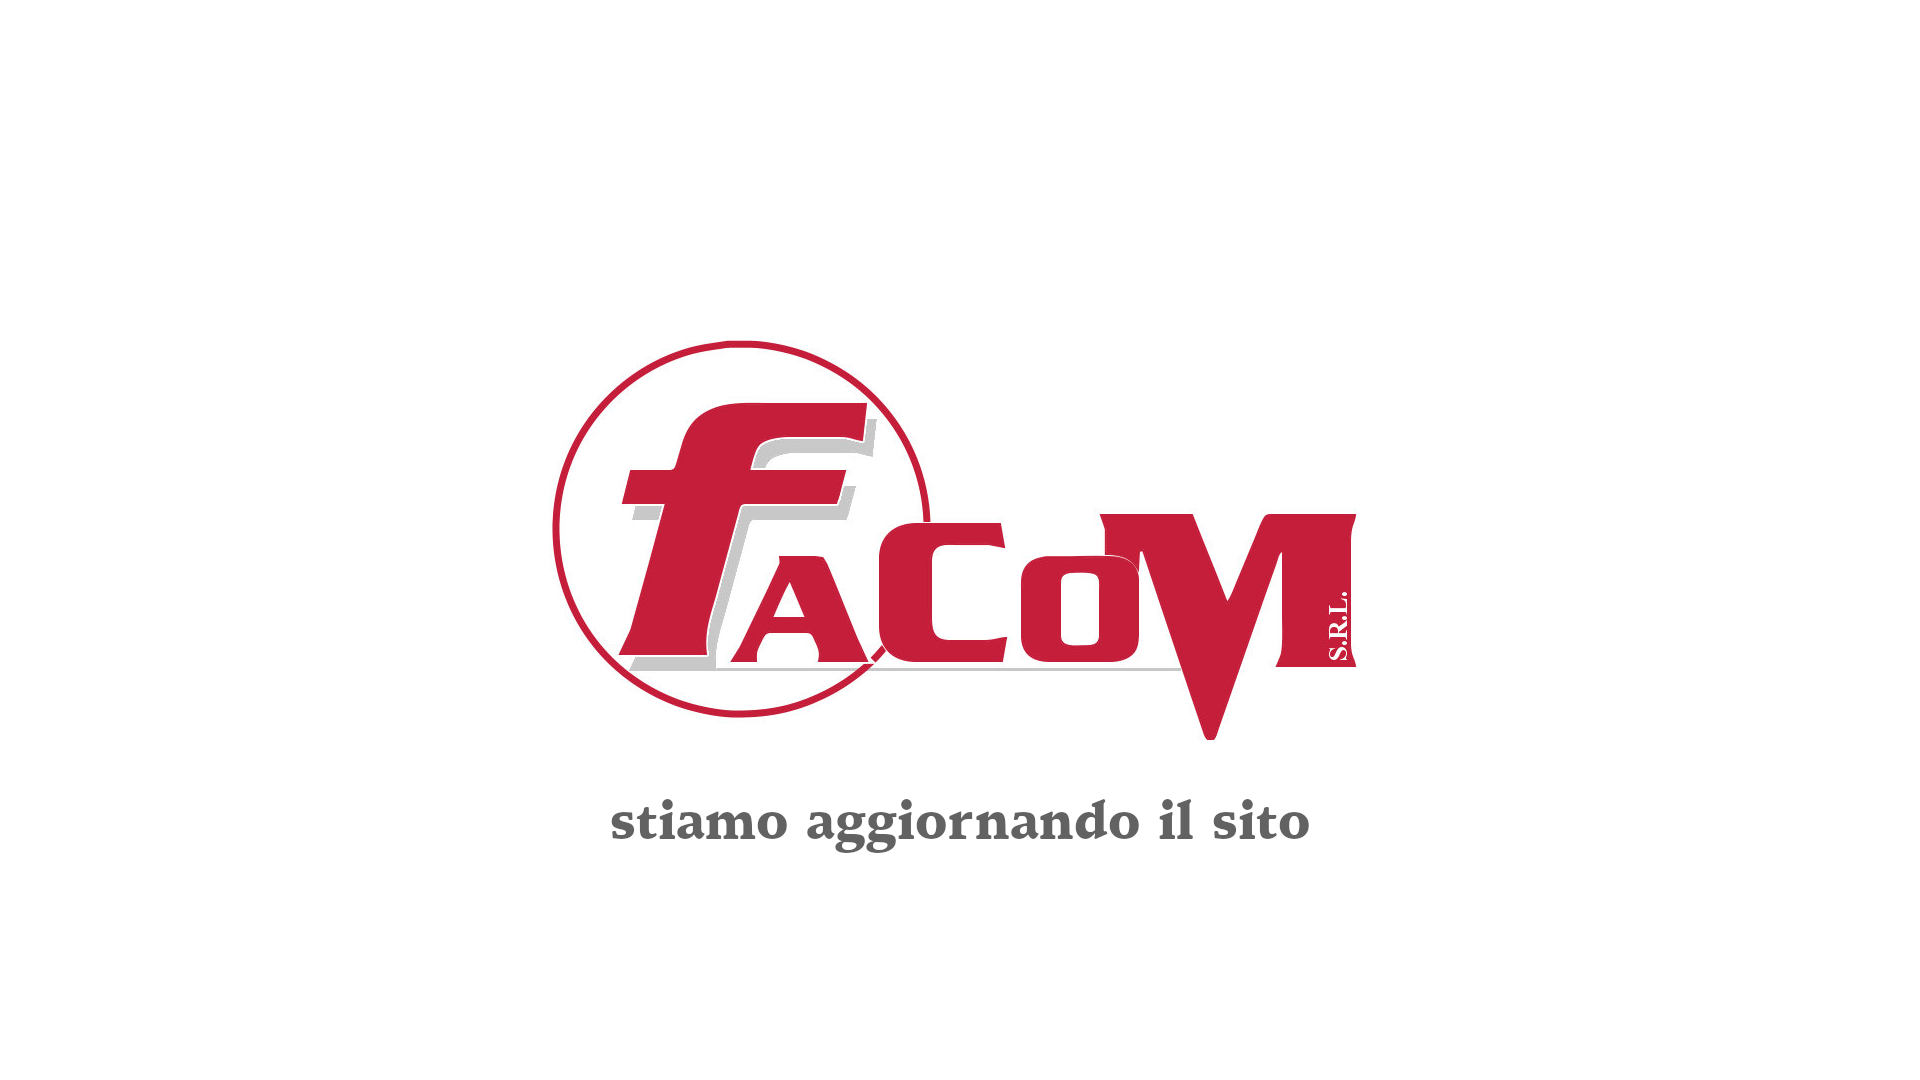 facom - work in progress